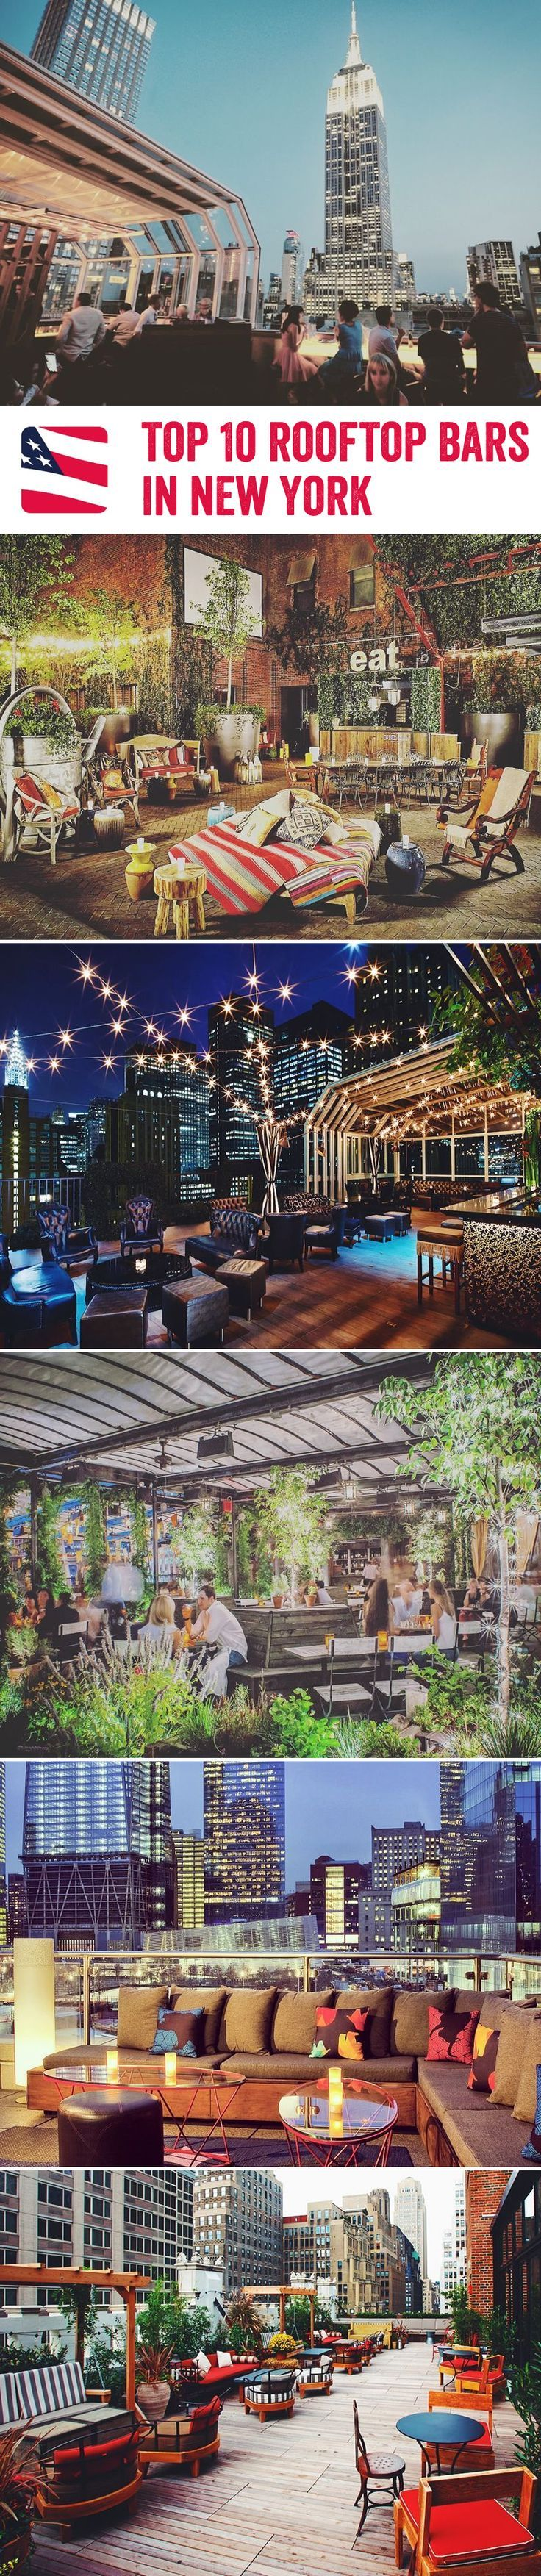 American Sky has collated their favourite open-air bars in New York City.